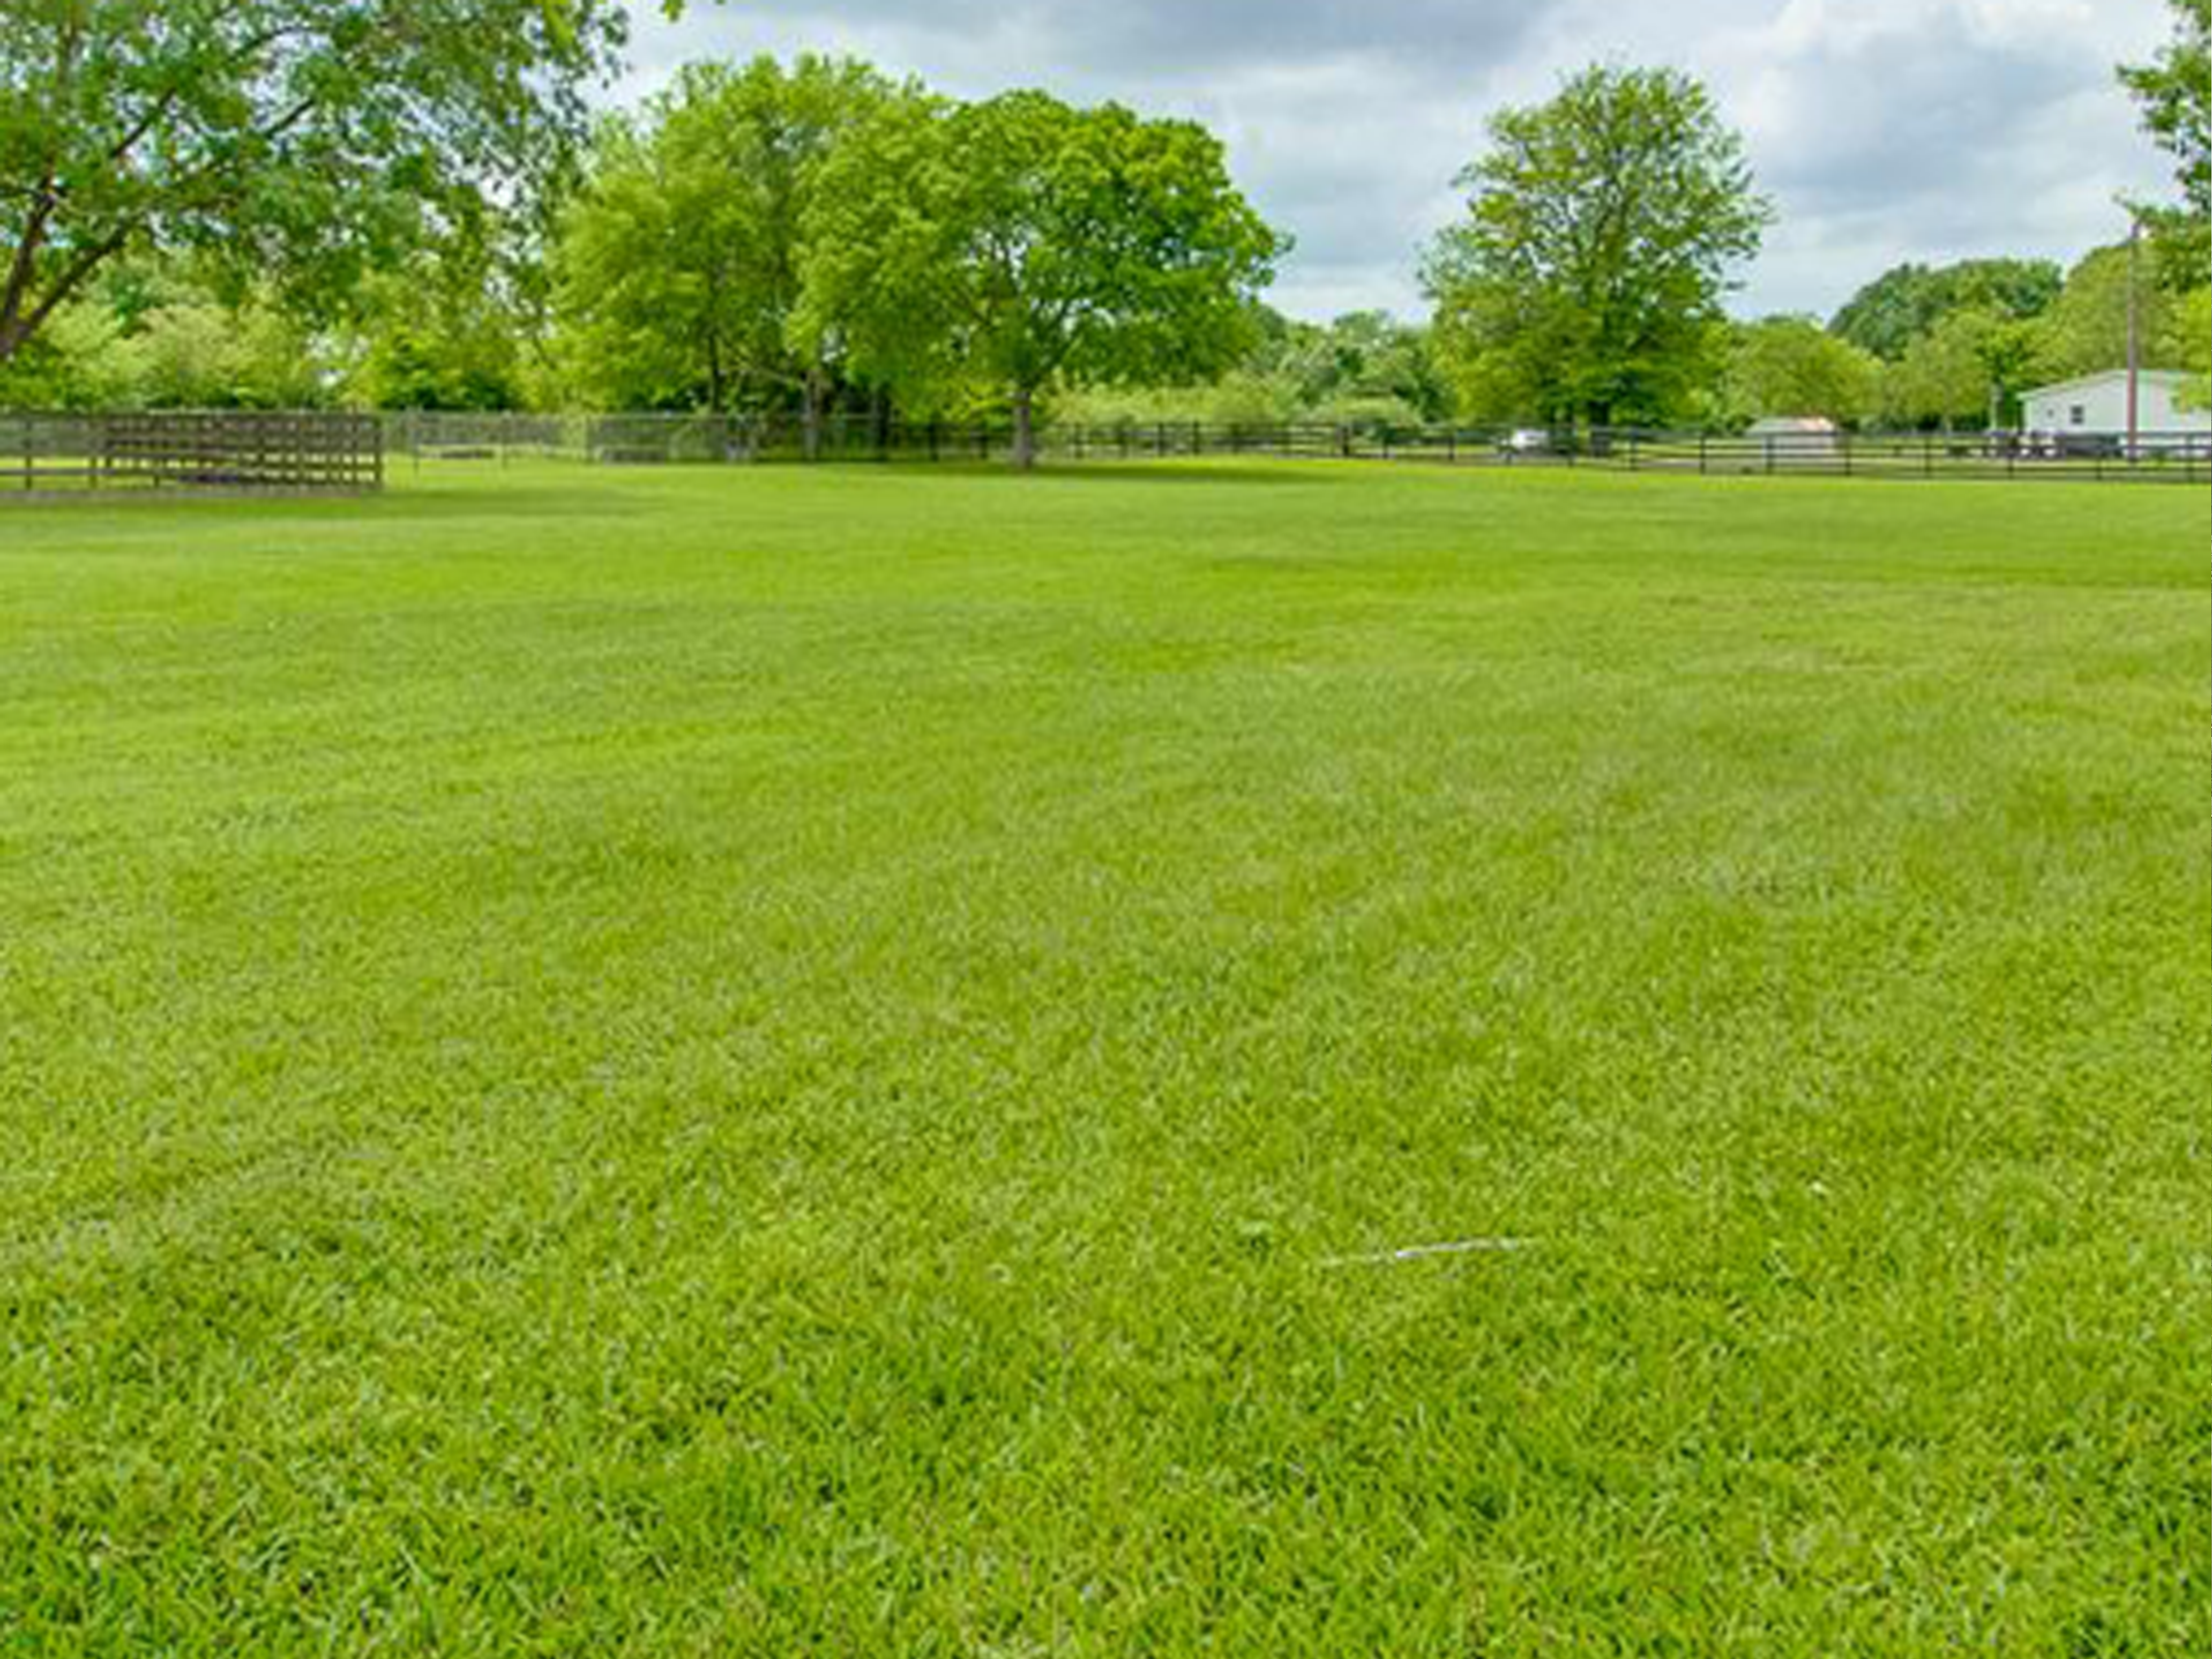 Grounds Maintenance Service for Parish Councils in Northamptonshire.